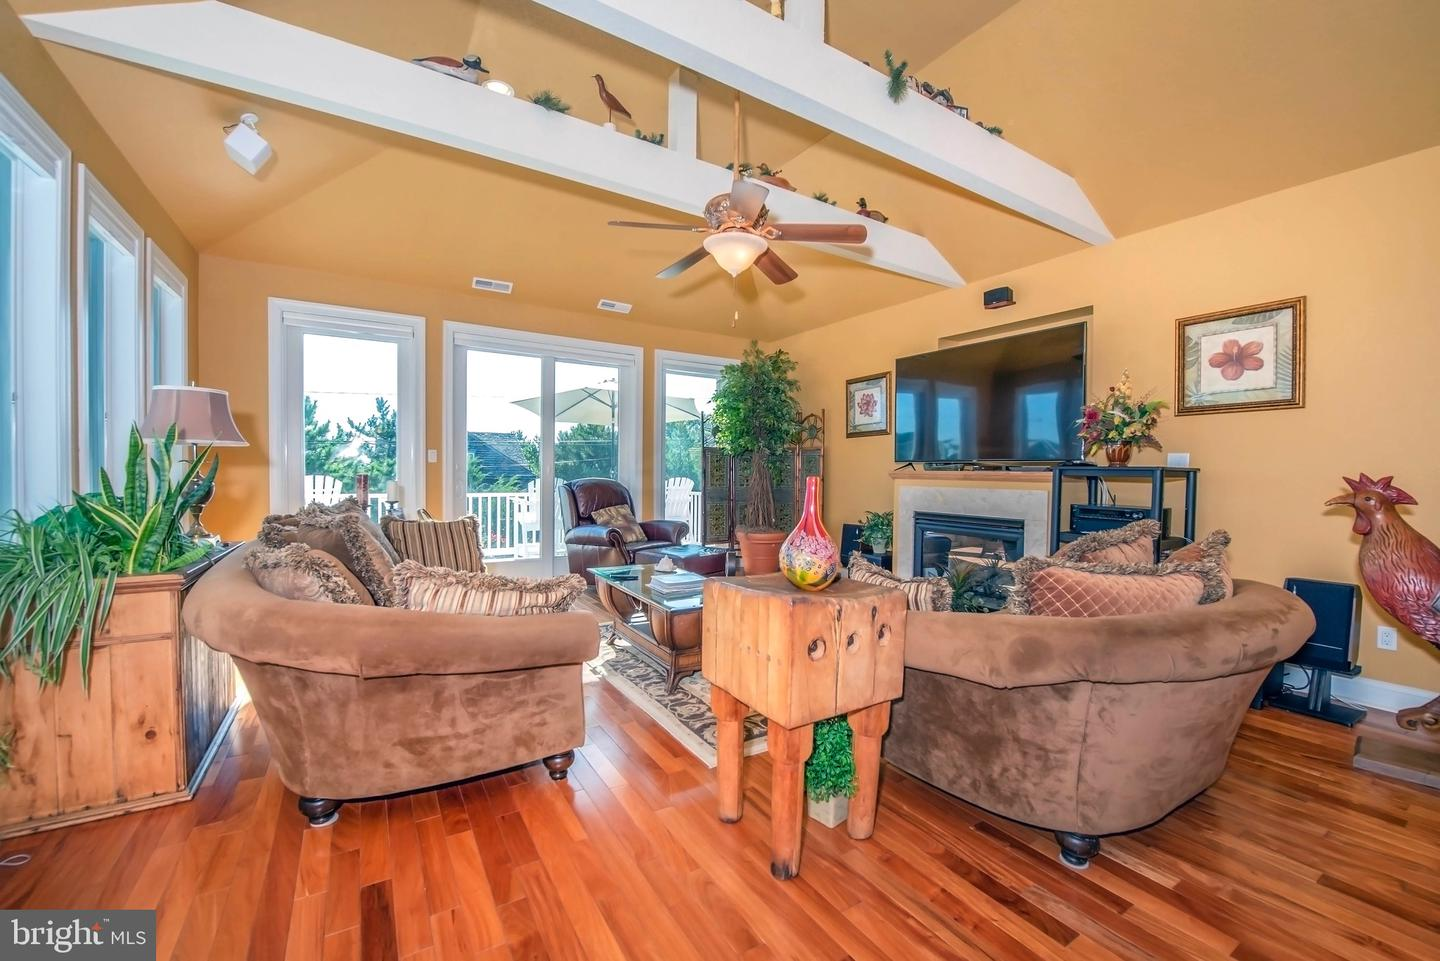 DESU147280-302007870592-2019-08-31-13-42-10 810 Bunting Ave | Fenwick Island, De Real Estate For Sale | MLS# Desu147280  - Suzanne Macnab